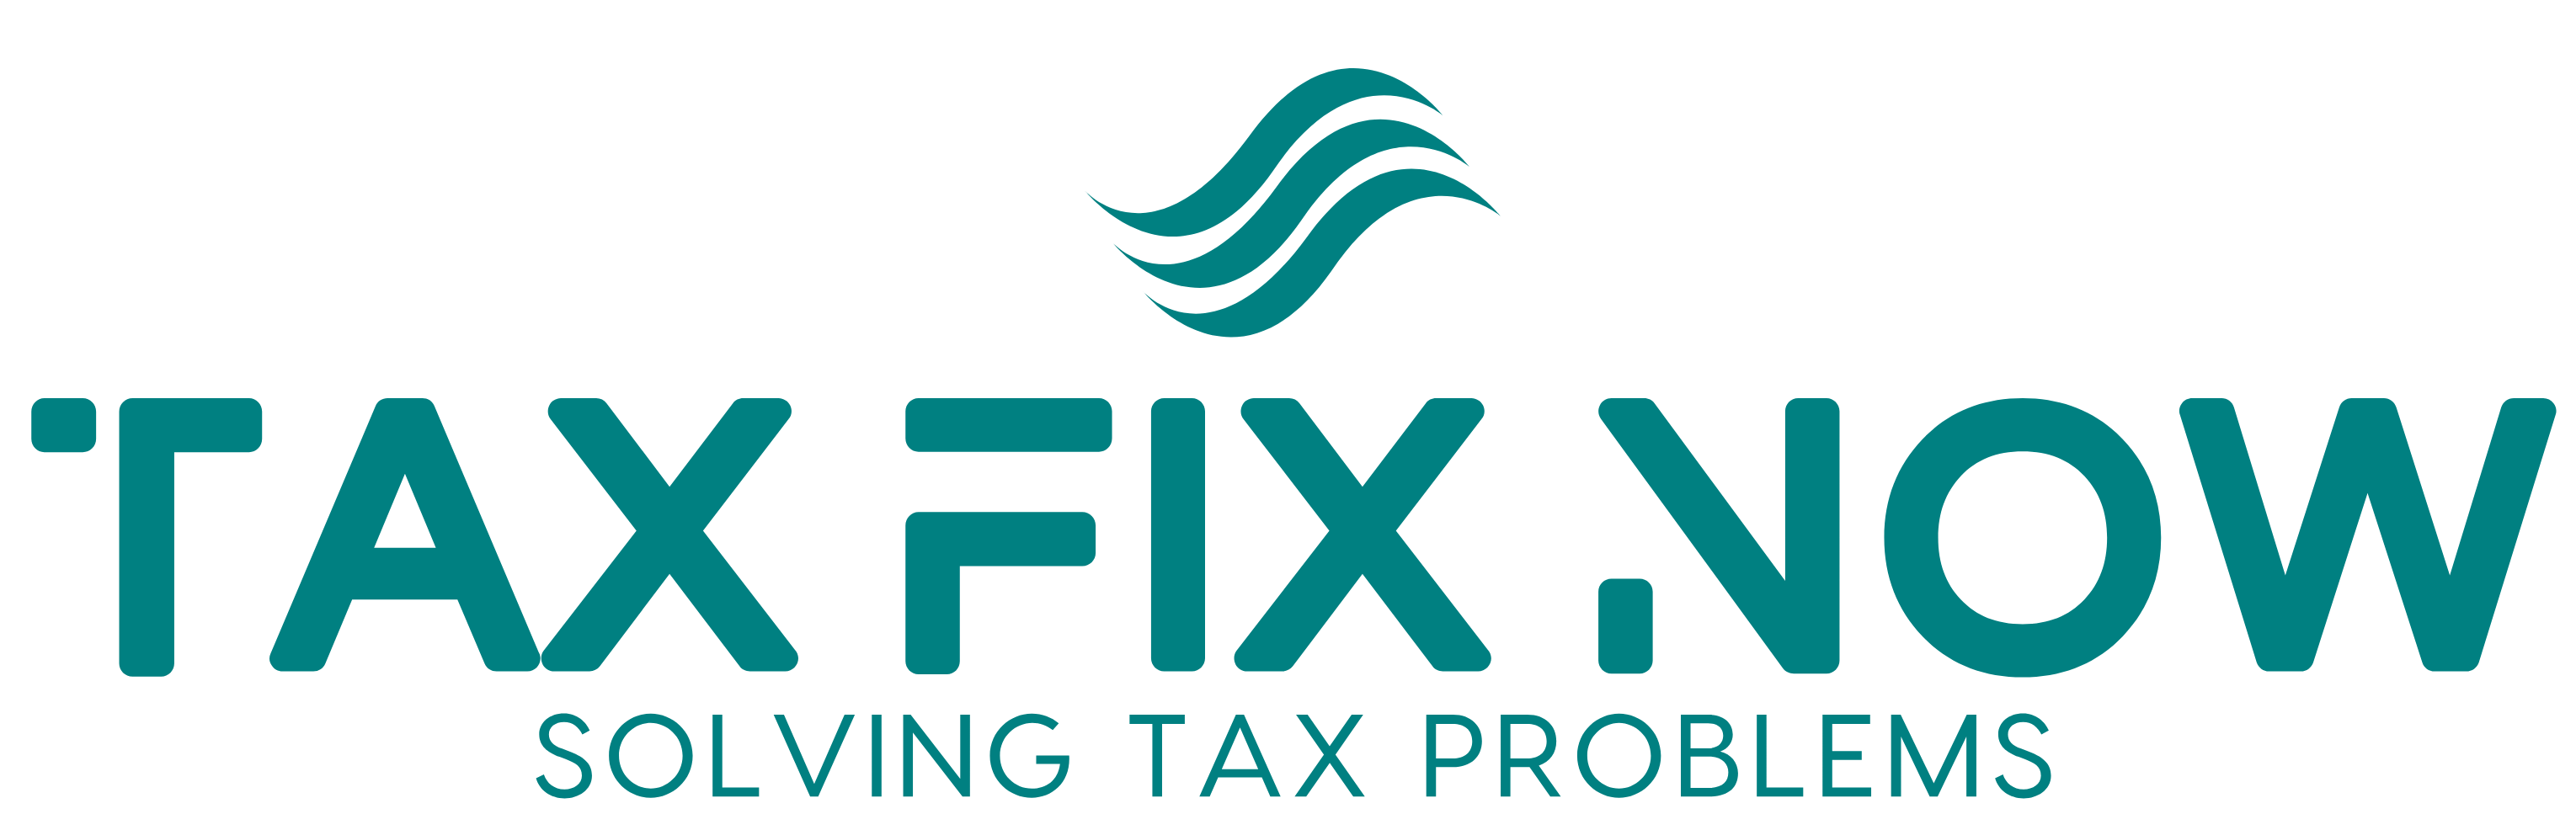 Highland Village, TX Bookkeeping Firm | Tax Strategies for Individuals Page | Tax Fix Now